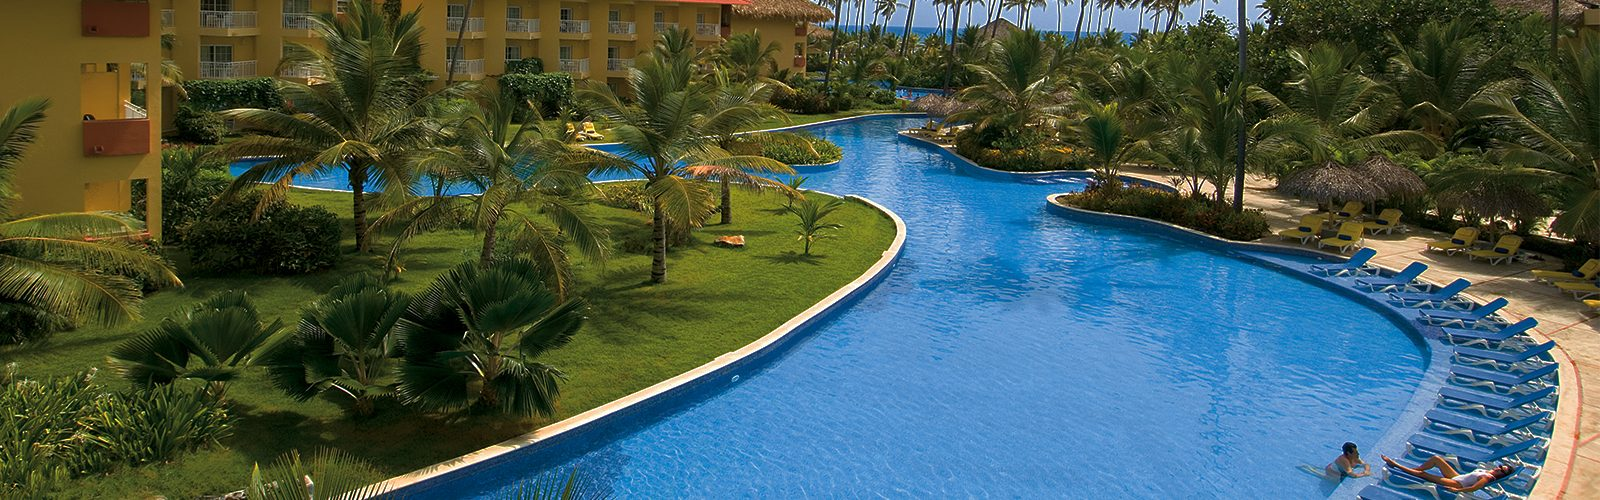 Top All Inclusive Family Holidays Header